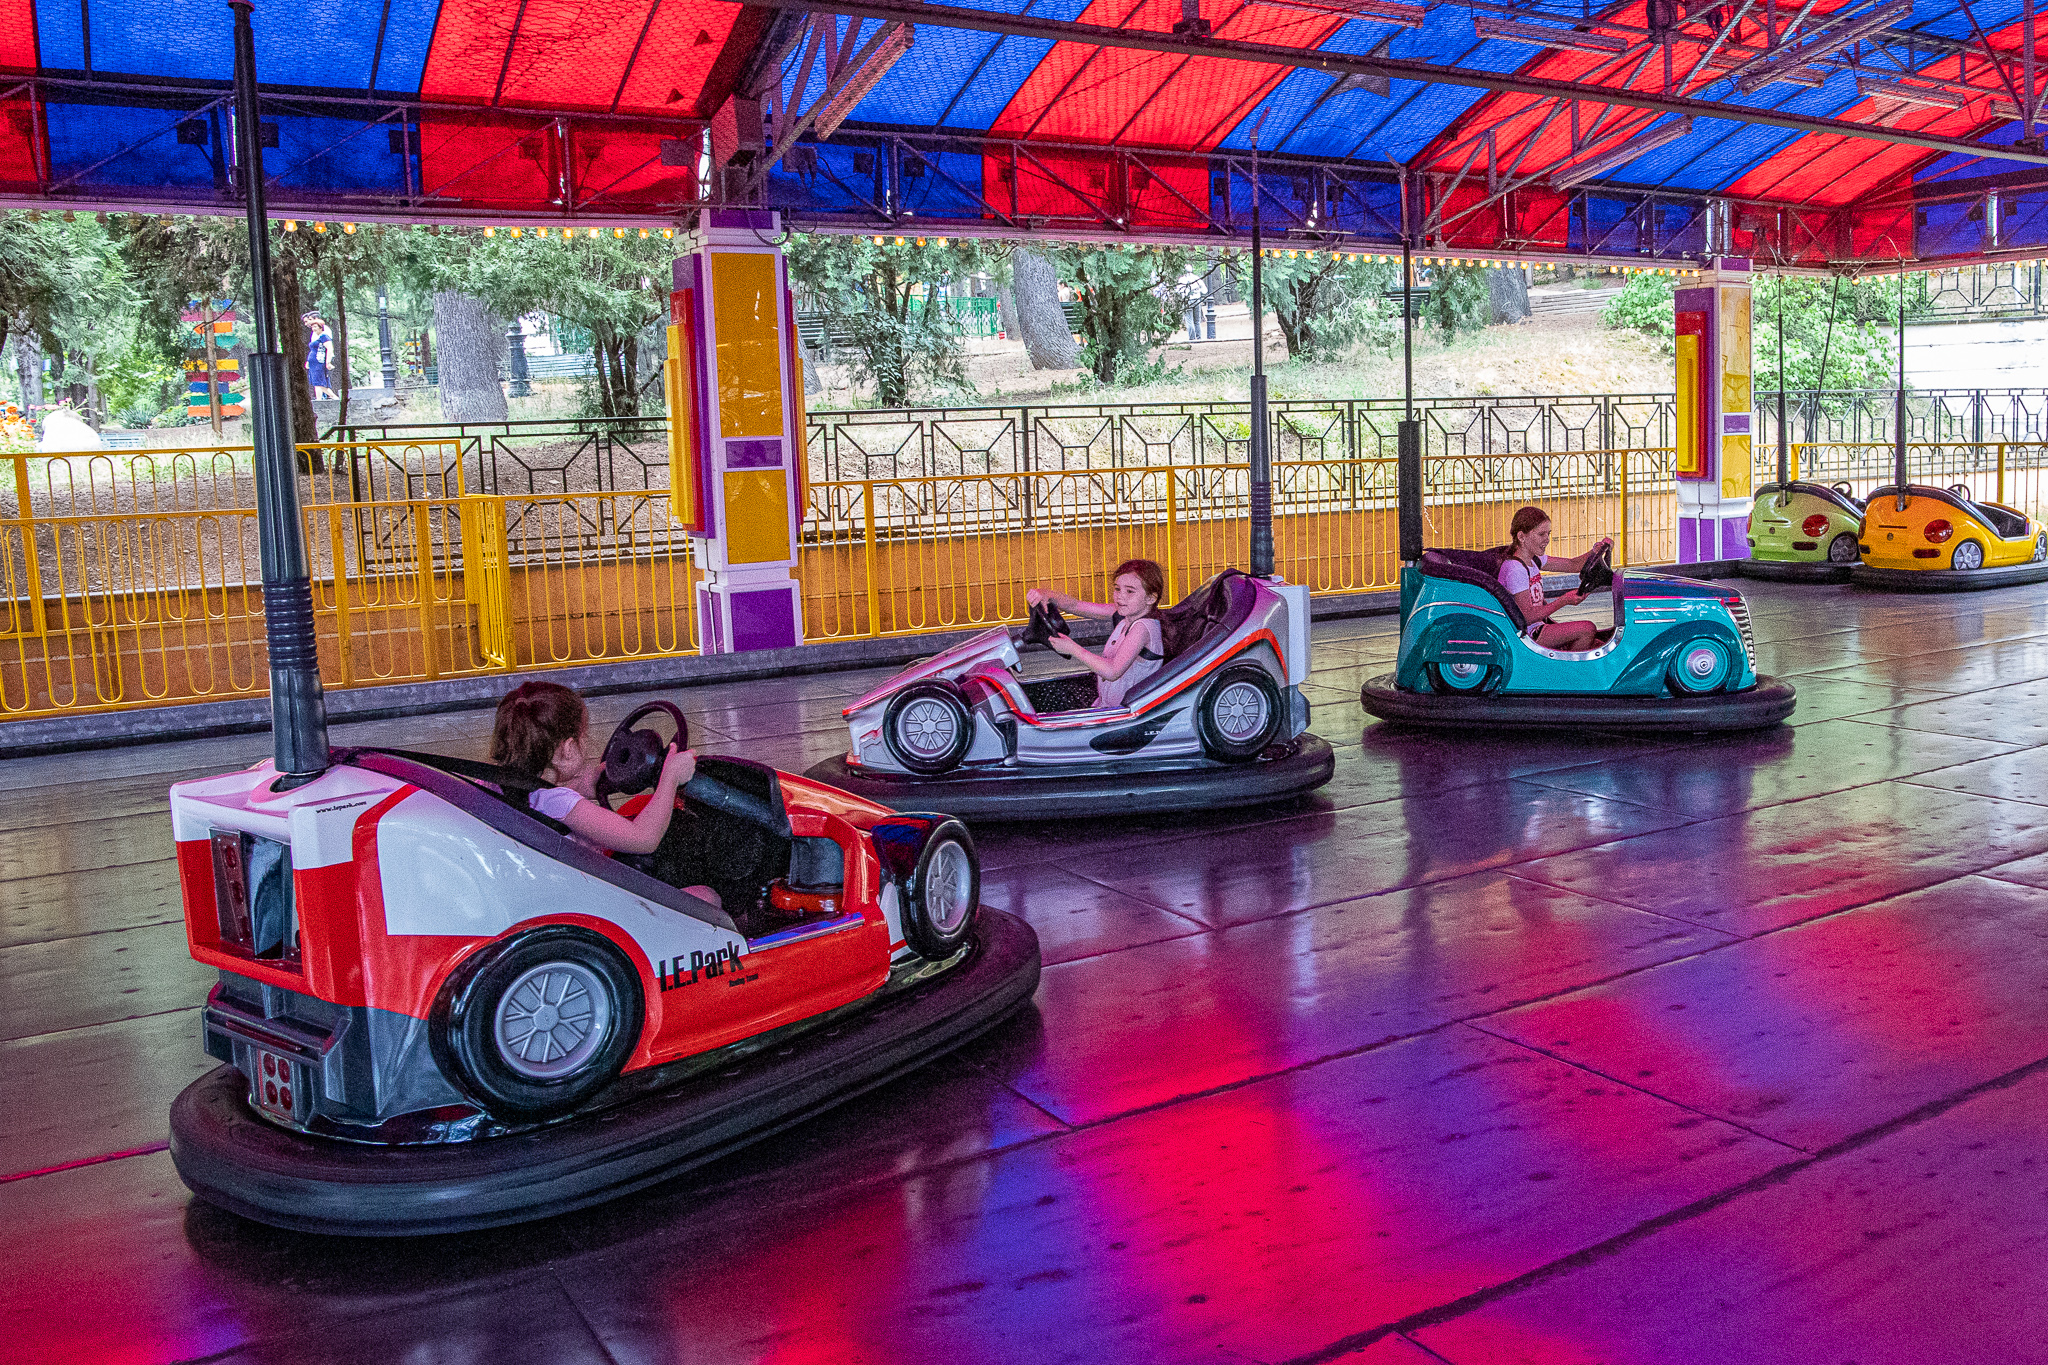 Driving a dodgem for kids is actually a lot harder than it looks